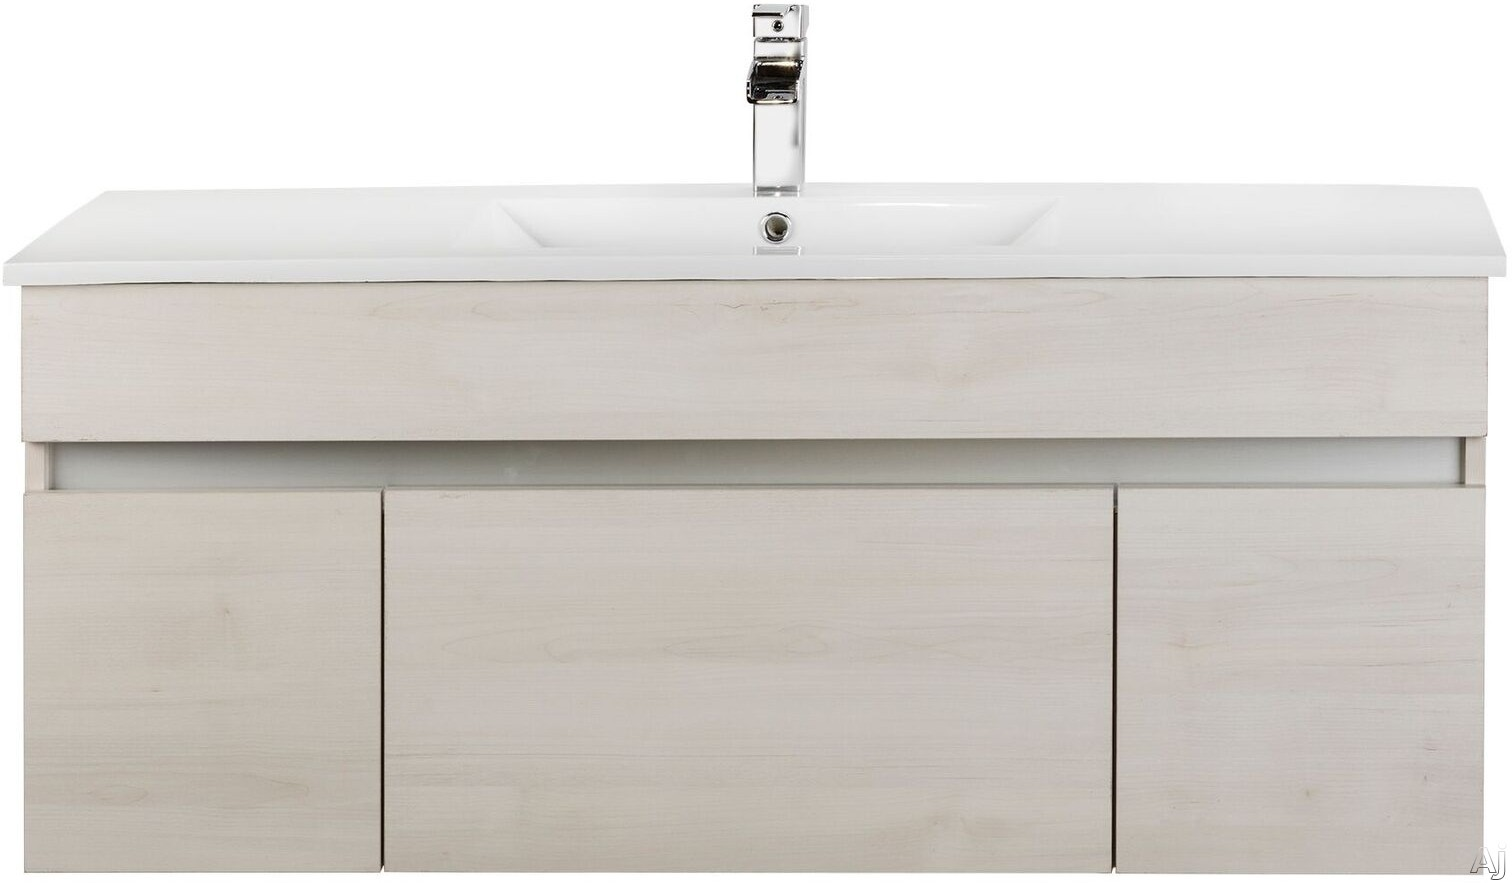 Cutler Kitchen & Bath Ivory FVCHFH48 48 Inch Wall Mount Bathroom Vanity with 1 Soft Close Drawer, Countertop and Sink and European Soft-Close Hardware: Fogo Harbor